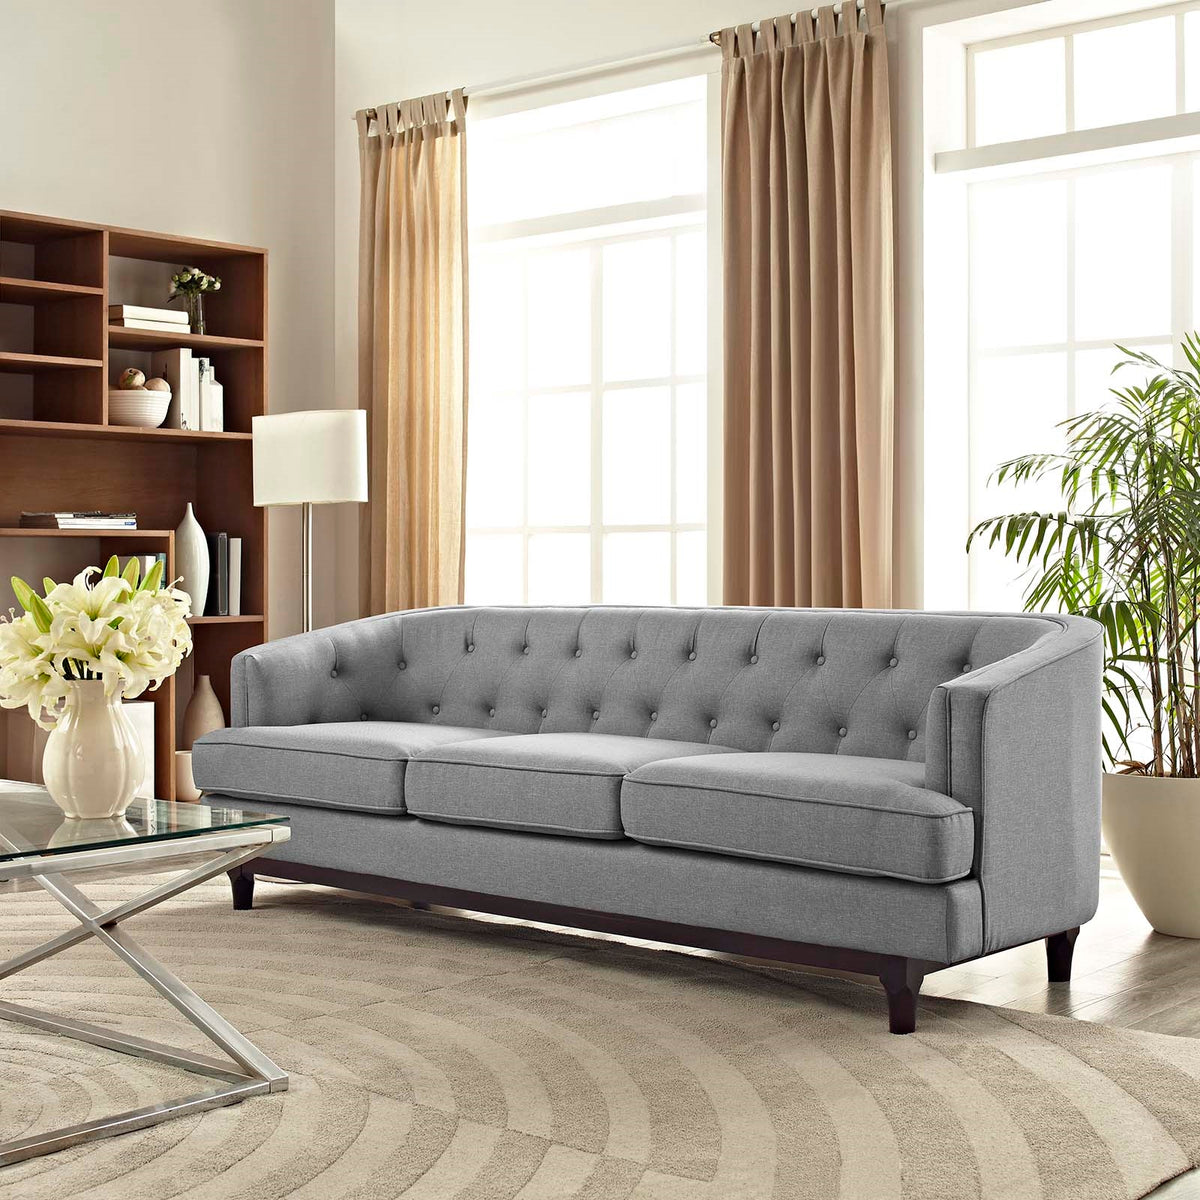 Barlo Sofa Light Gray